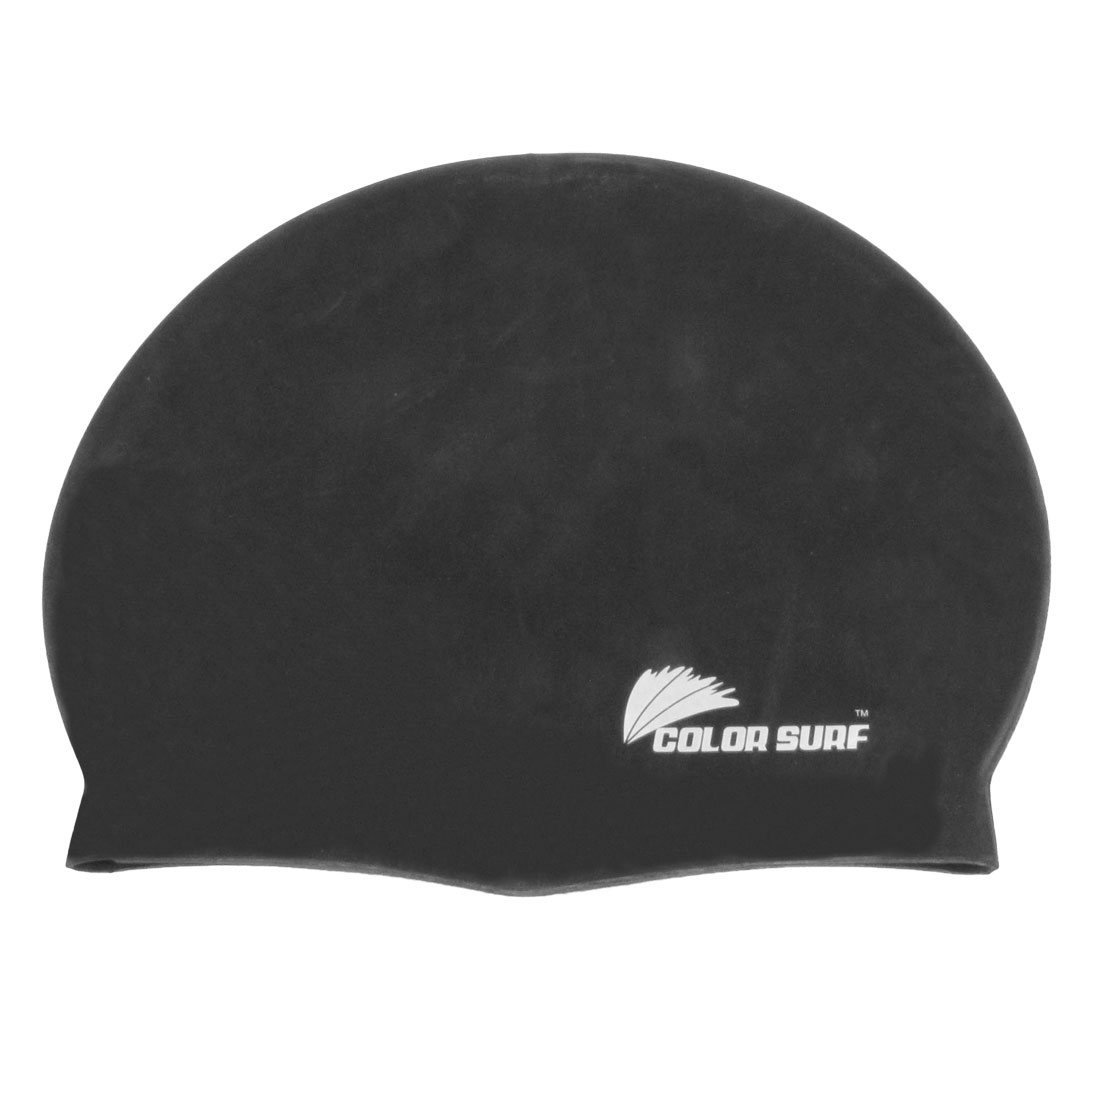 Adults Silicone Flexible Elastic Surfing Swimming Cap Hat Black 19 x 21.8cm